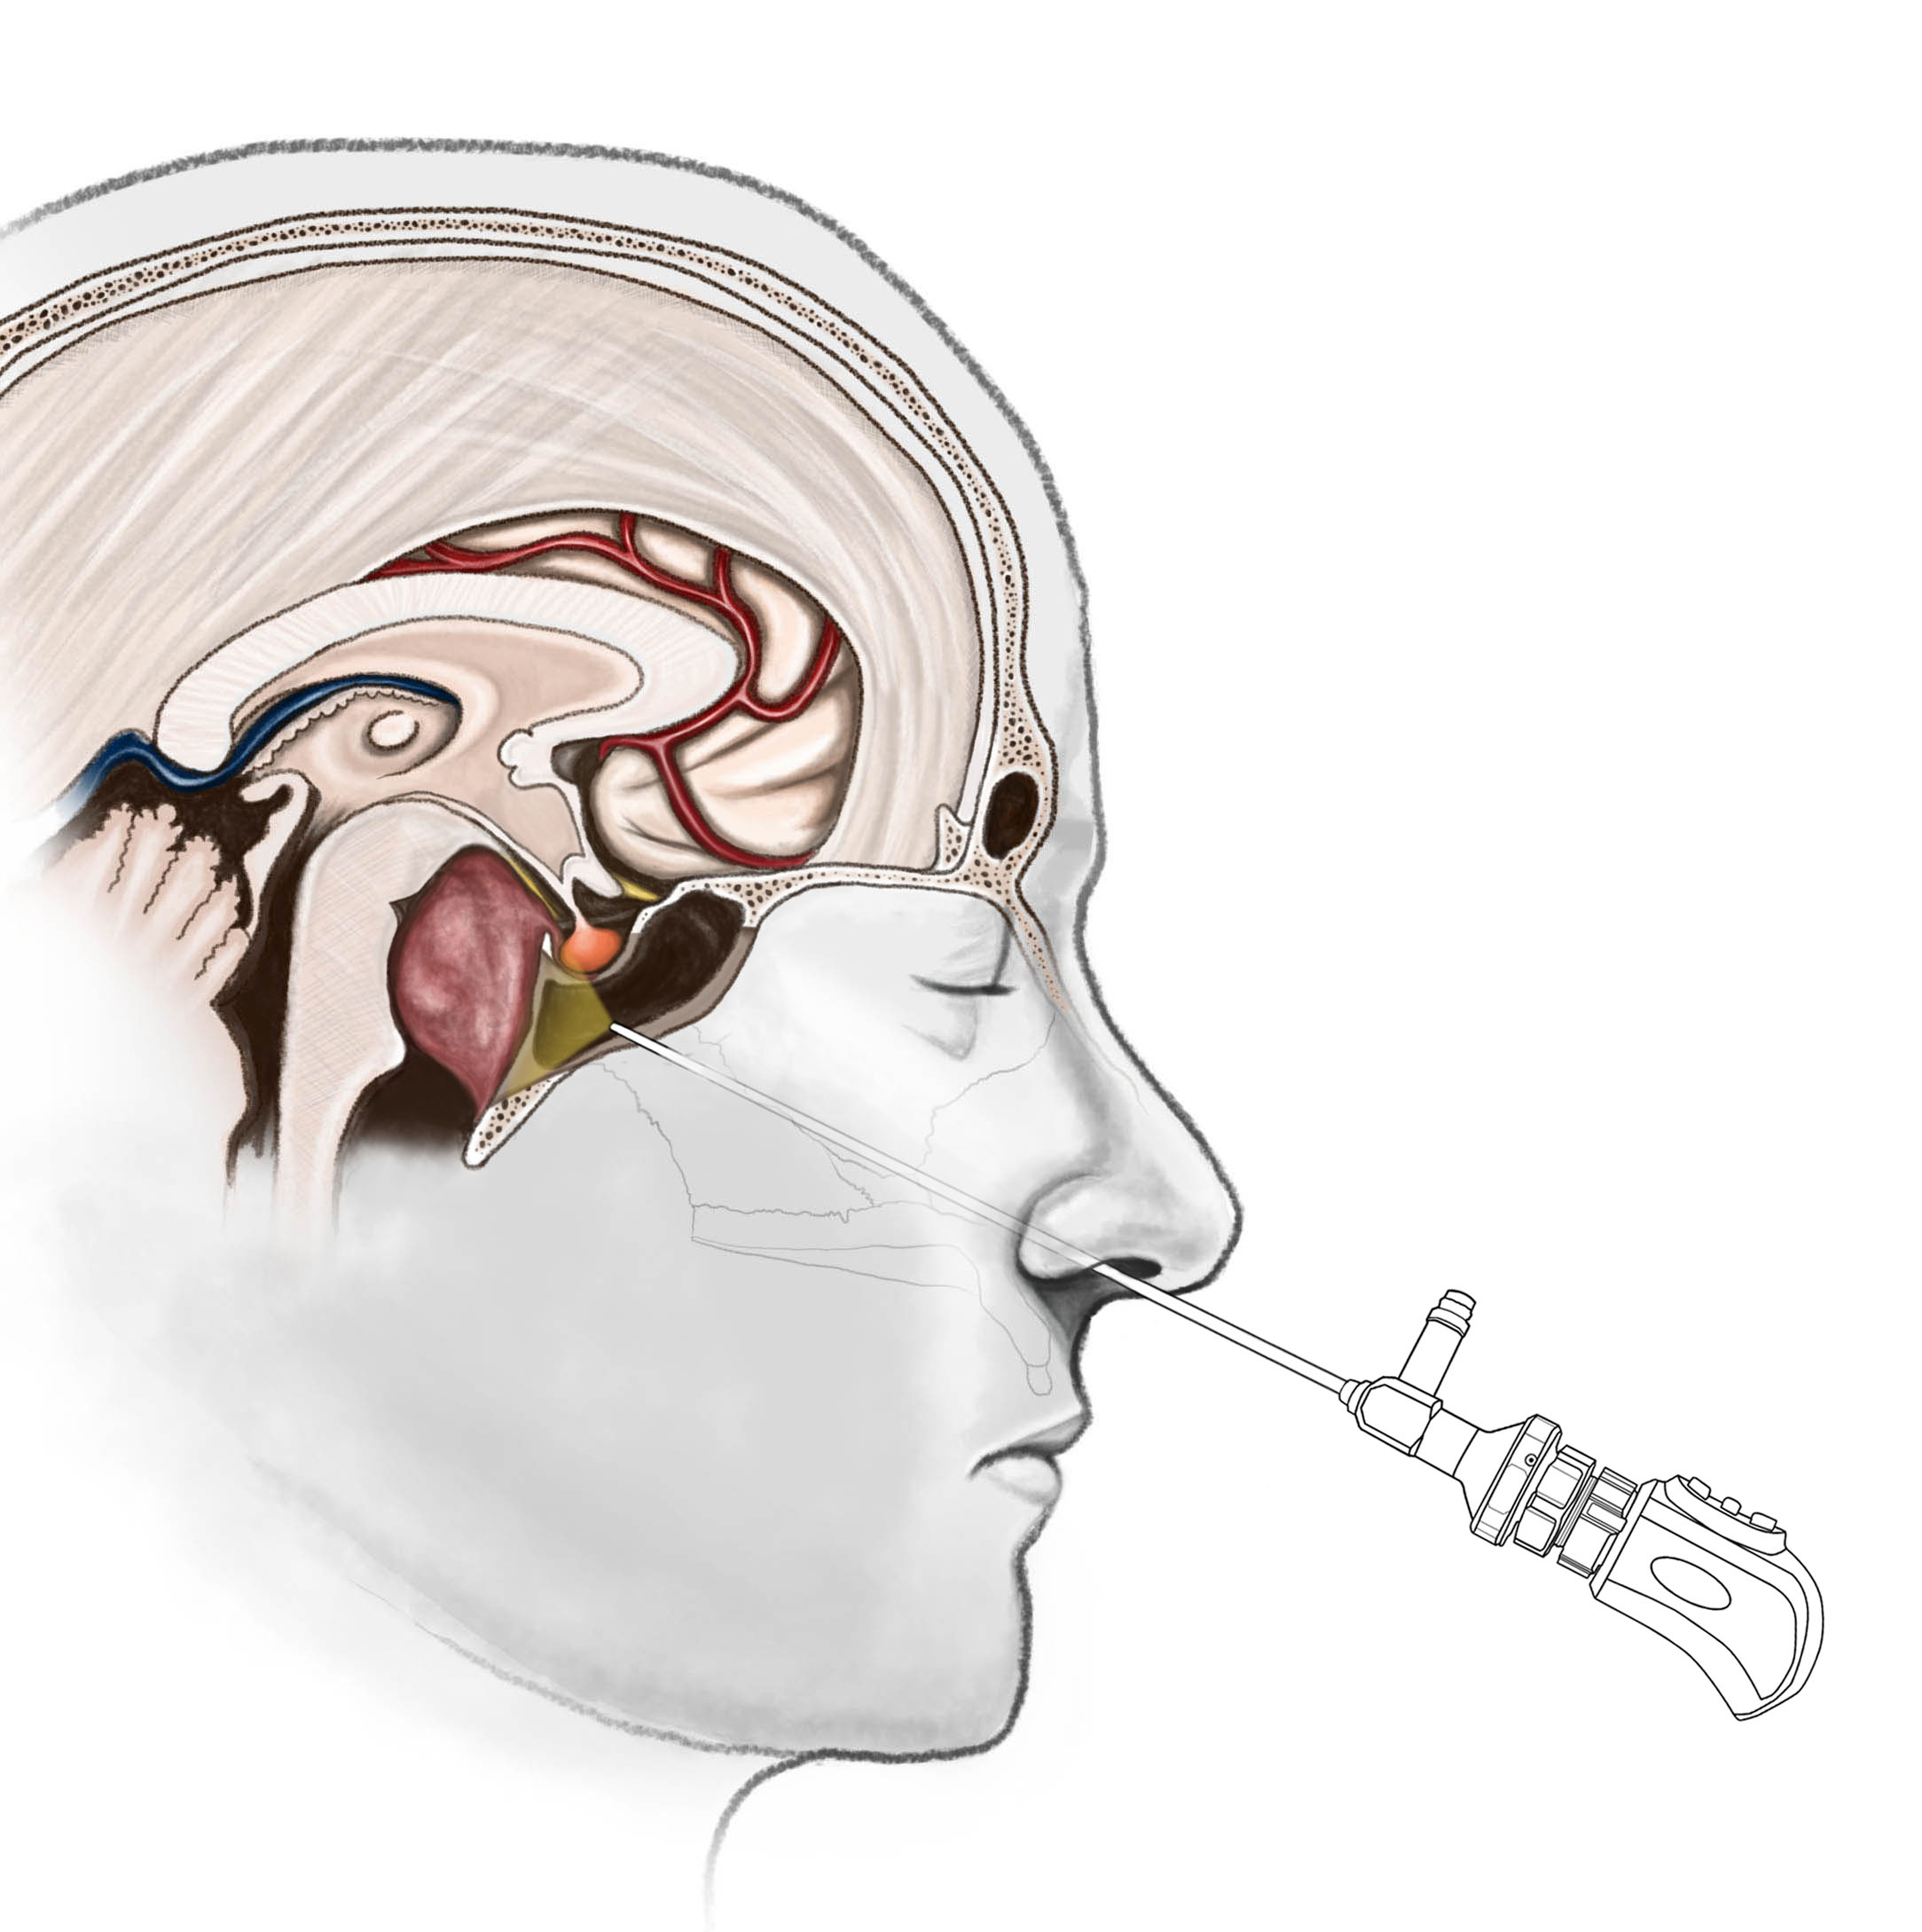 Endoscopic Endonasal to Clivus